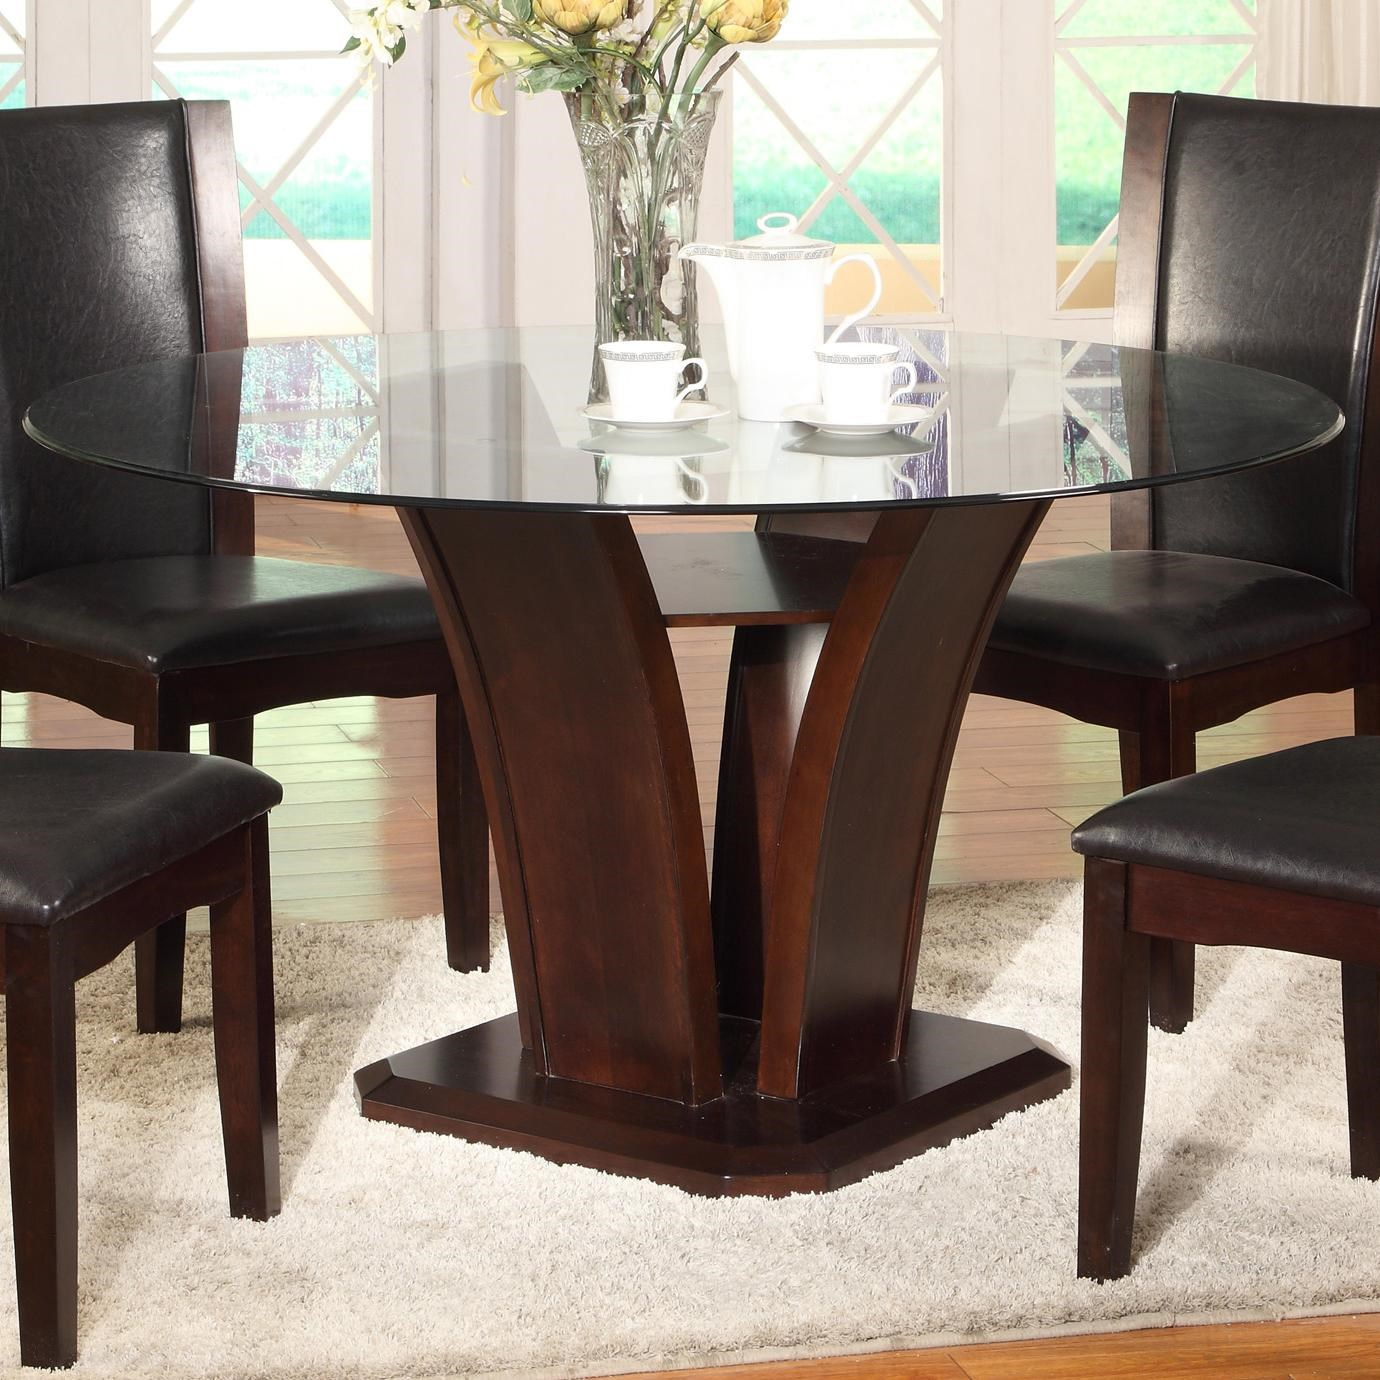 Round Glass Top Dining Table Camelia Espresso Round Glass Top Dining Table With Inverted Base By Crown Mark At Dunk Bright Furniture